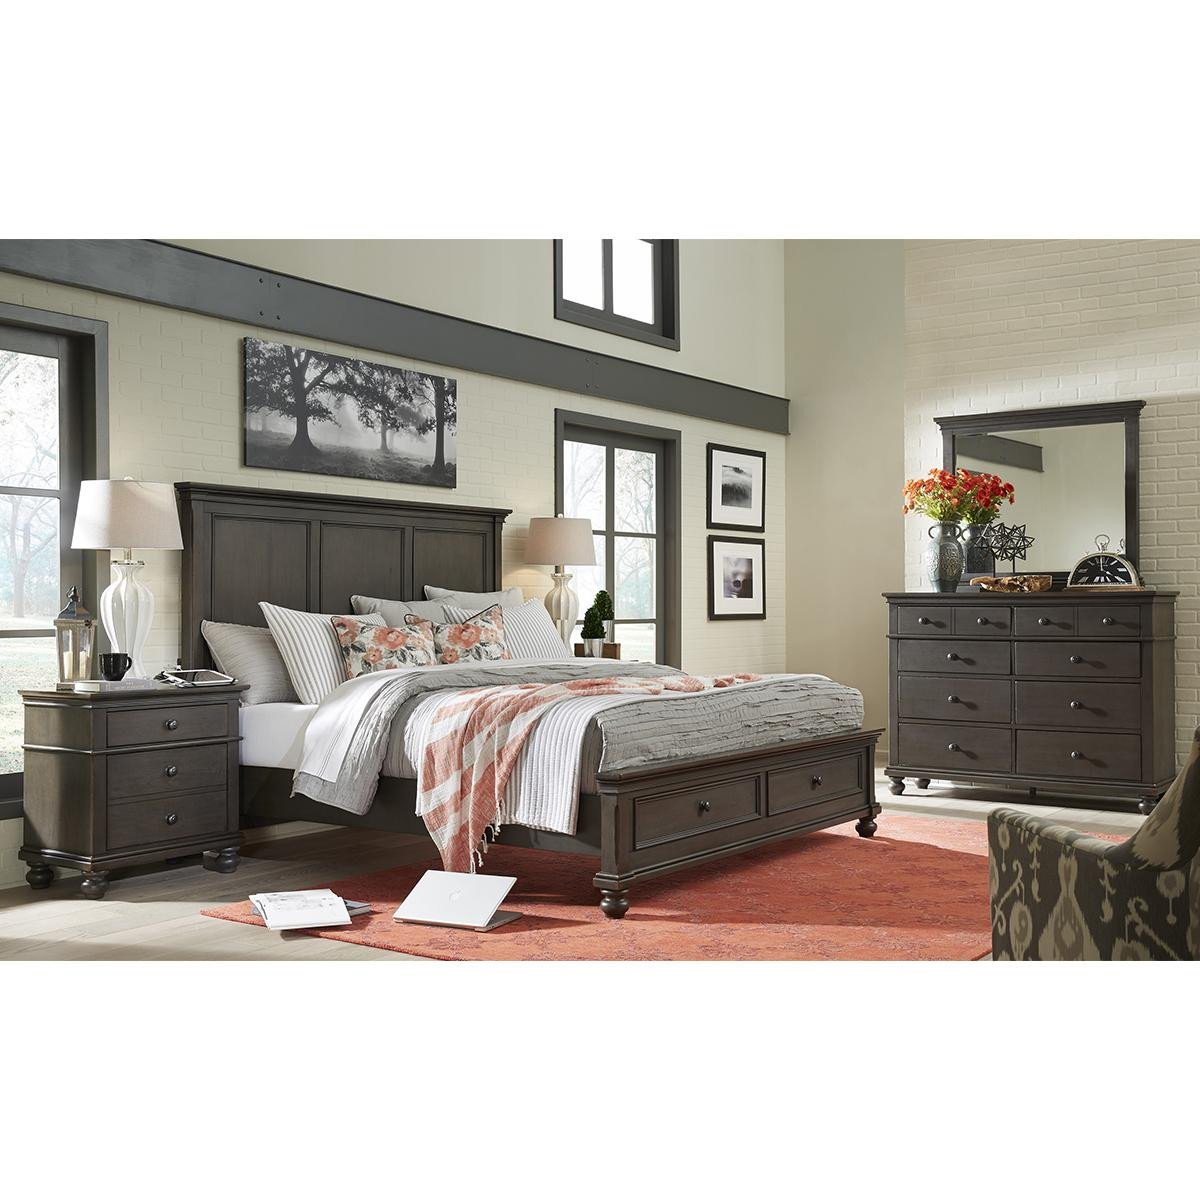 Bedroom Wall Units with Drawers Best Of Riva Ridge Oxford 4 Piece Queen Bedroom Set In Peppercorn